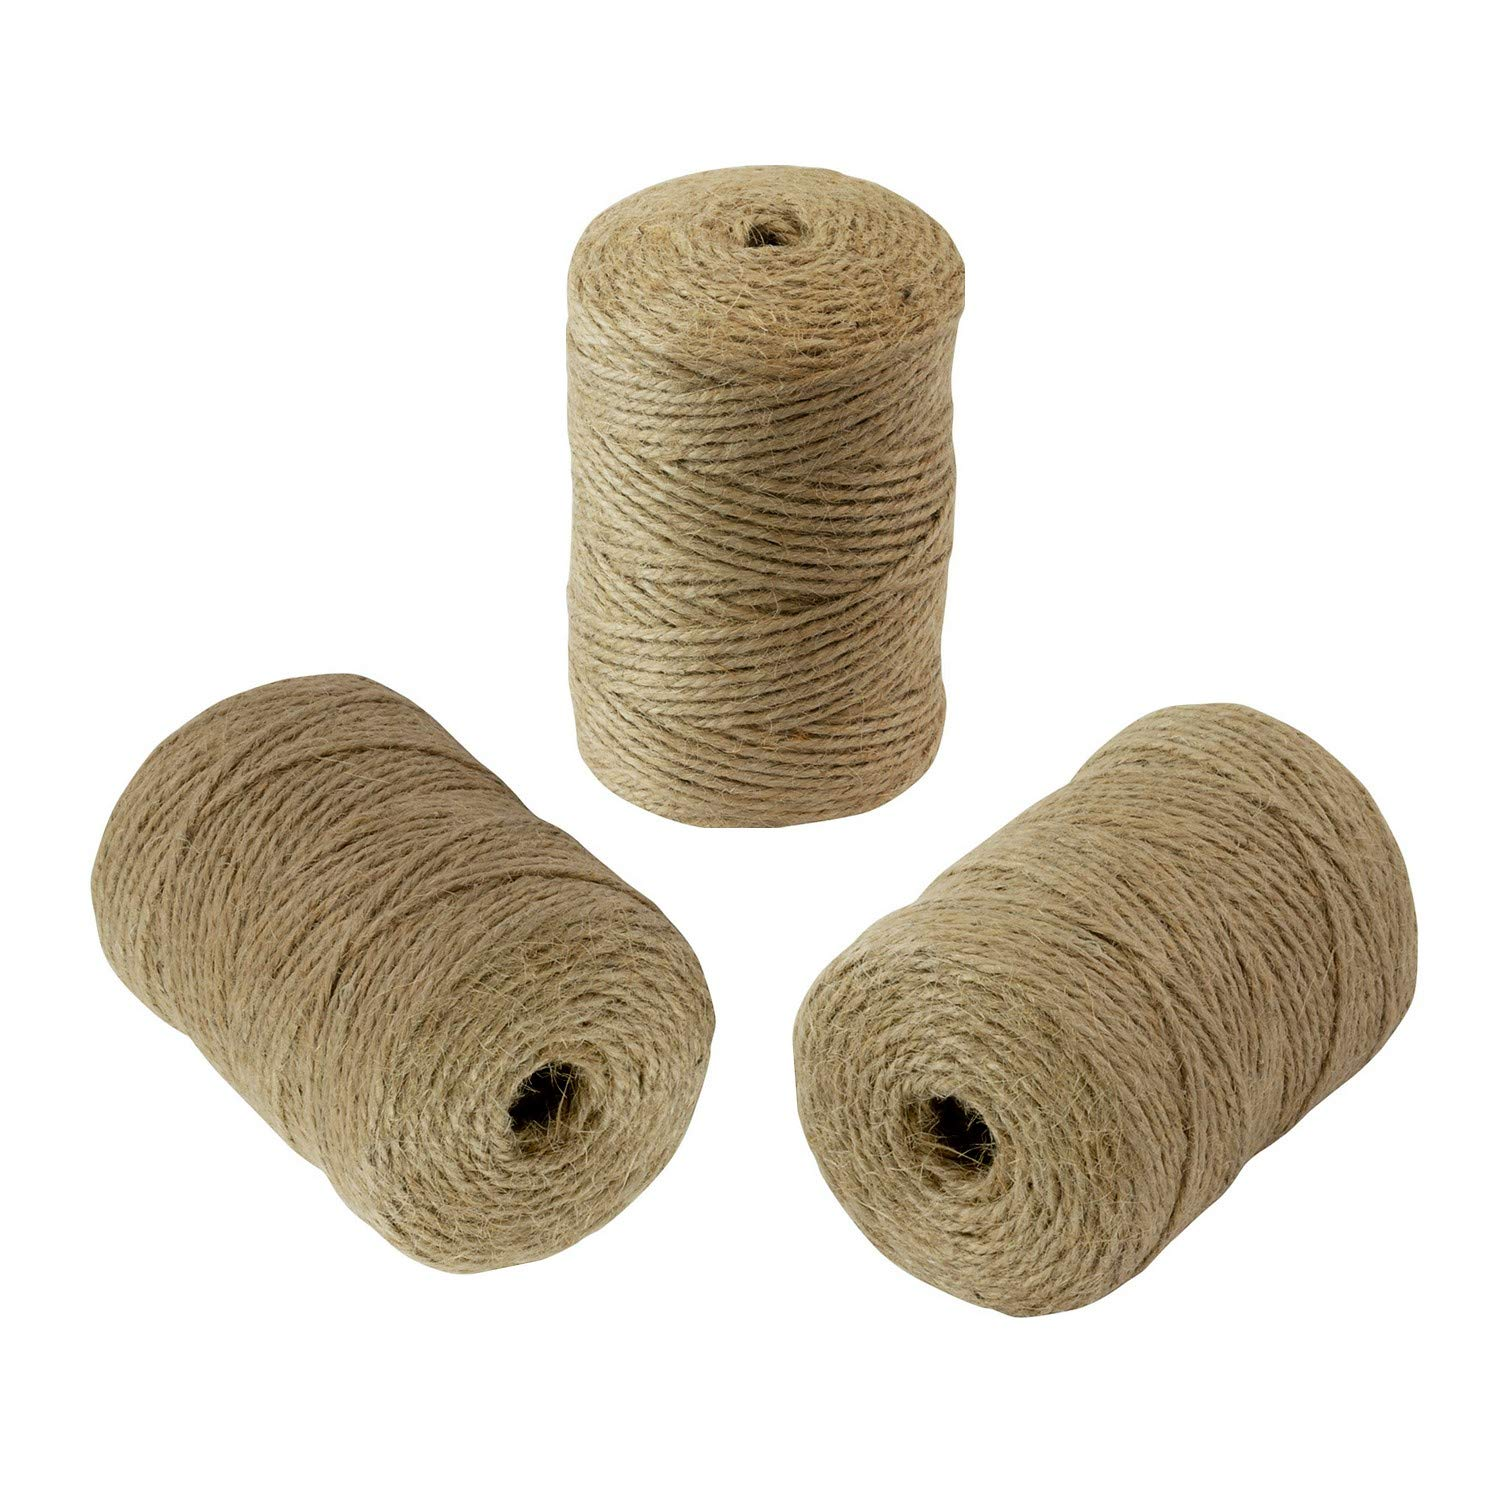 Houseables Jute Twine String, 624 Feet, 2 Rolls (312'/Roll), 2mm, 3 Ply, Brown, Burlap Twill Ribbon, Natural Hemp, Thin Garden Rope, Sisal Decorative Cord, for DIY Craft, Packing, Gifts, Wrapping 2 Rolls (312' /Roll) JTS-BR-328F-02